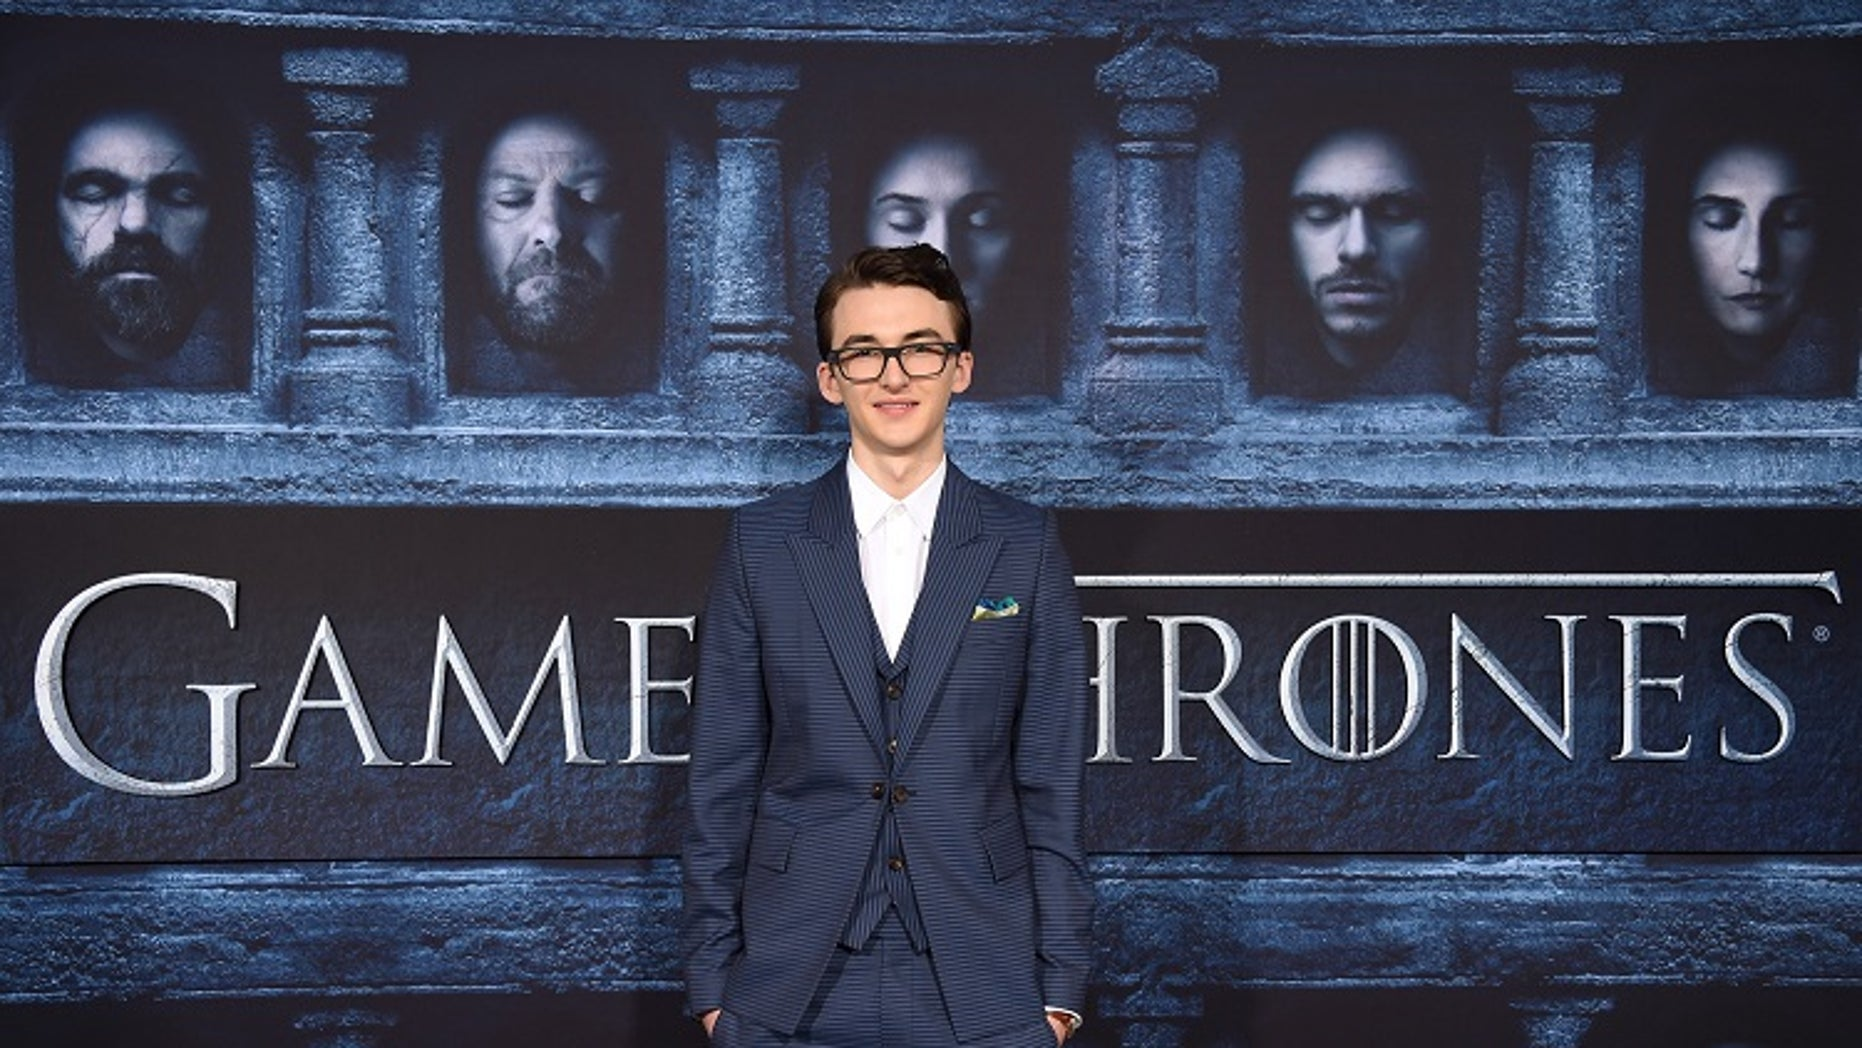 """""""Game of Thrones"""" character Bran Stark reunited with his sister after a long journey away during Sunday's episode and Twitter reacted."""